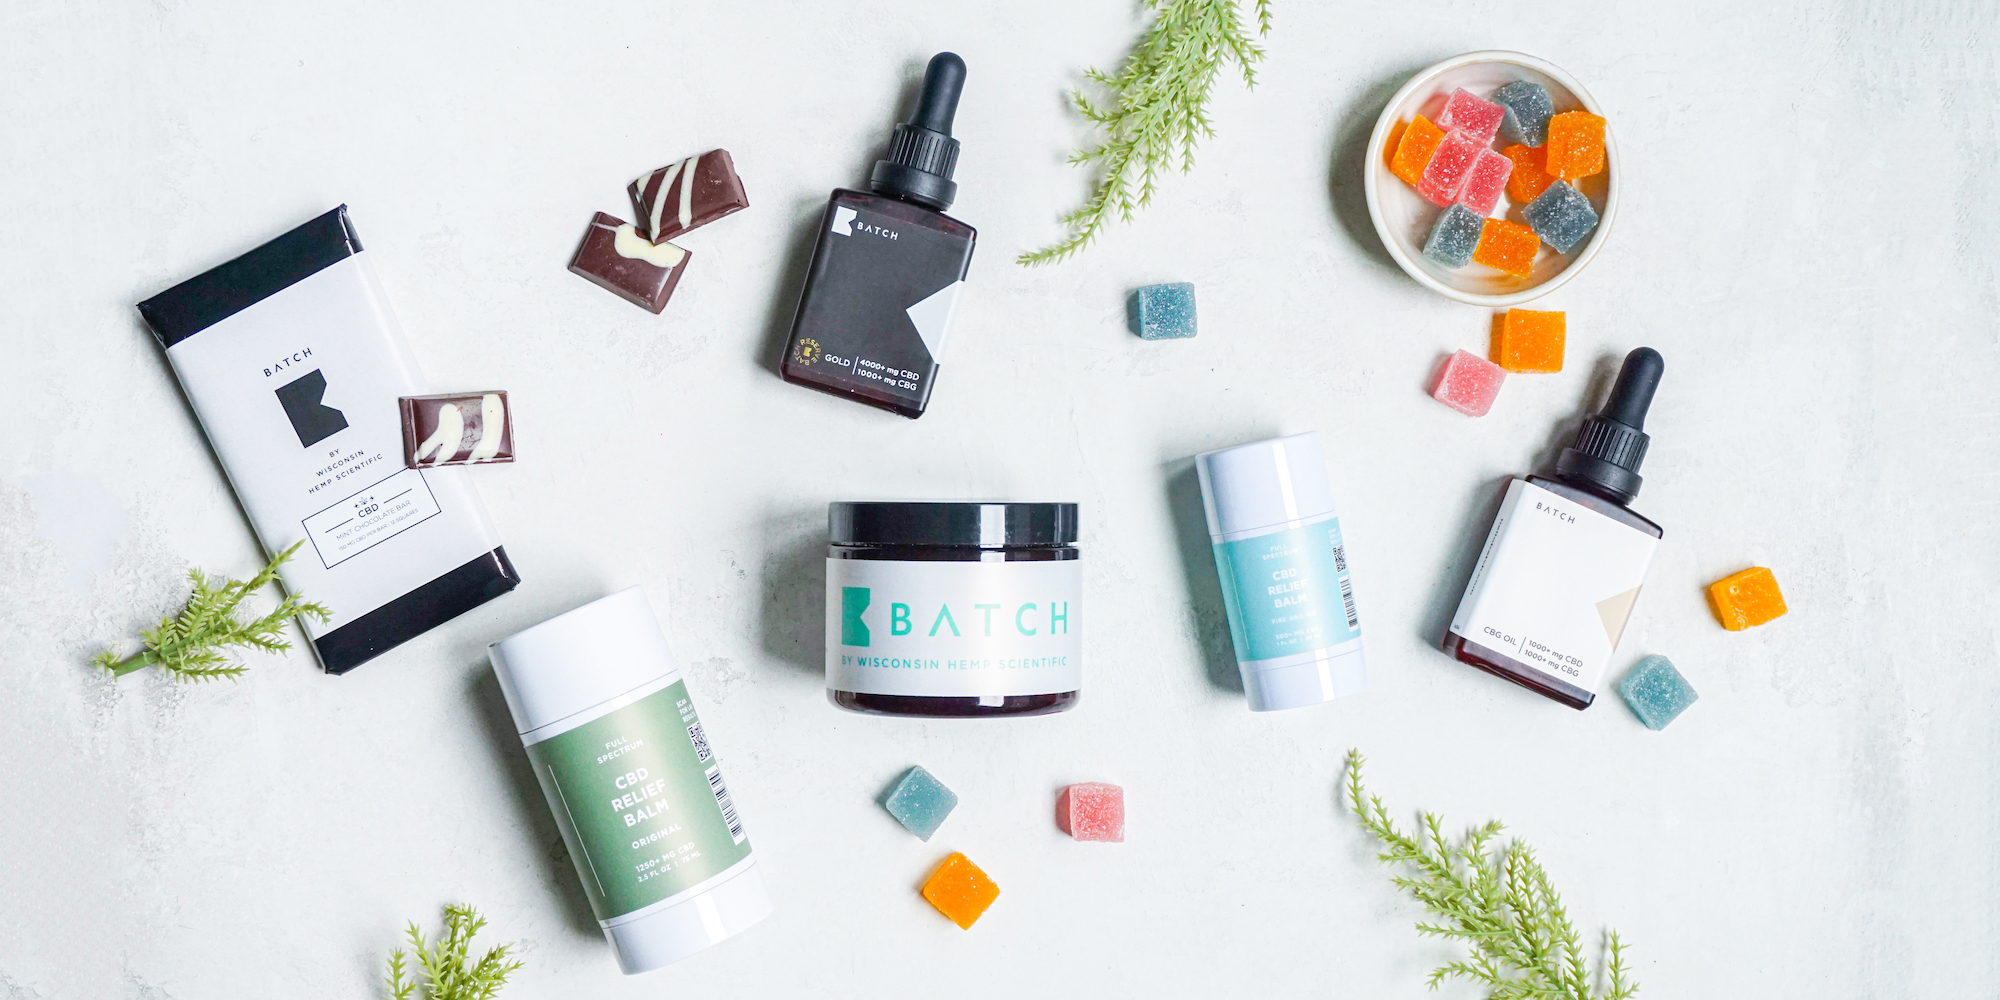 Batch CBD products review